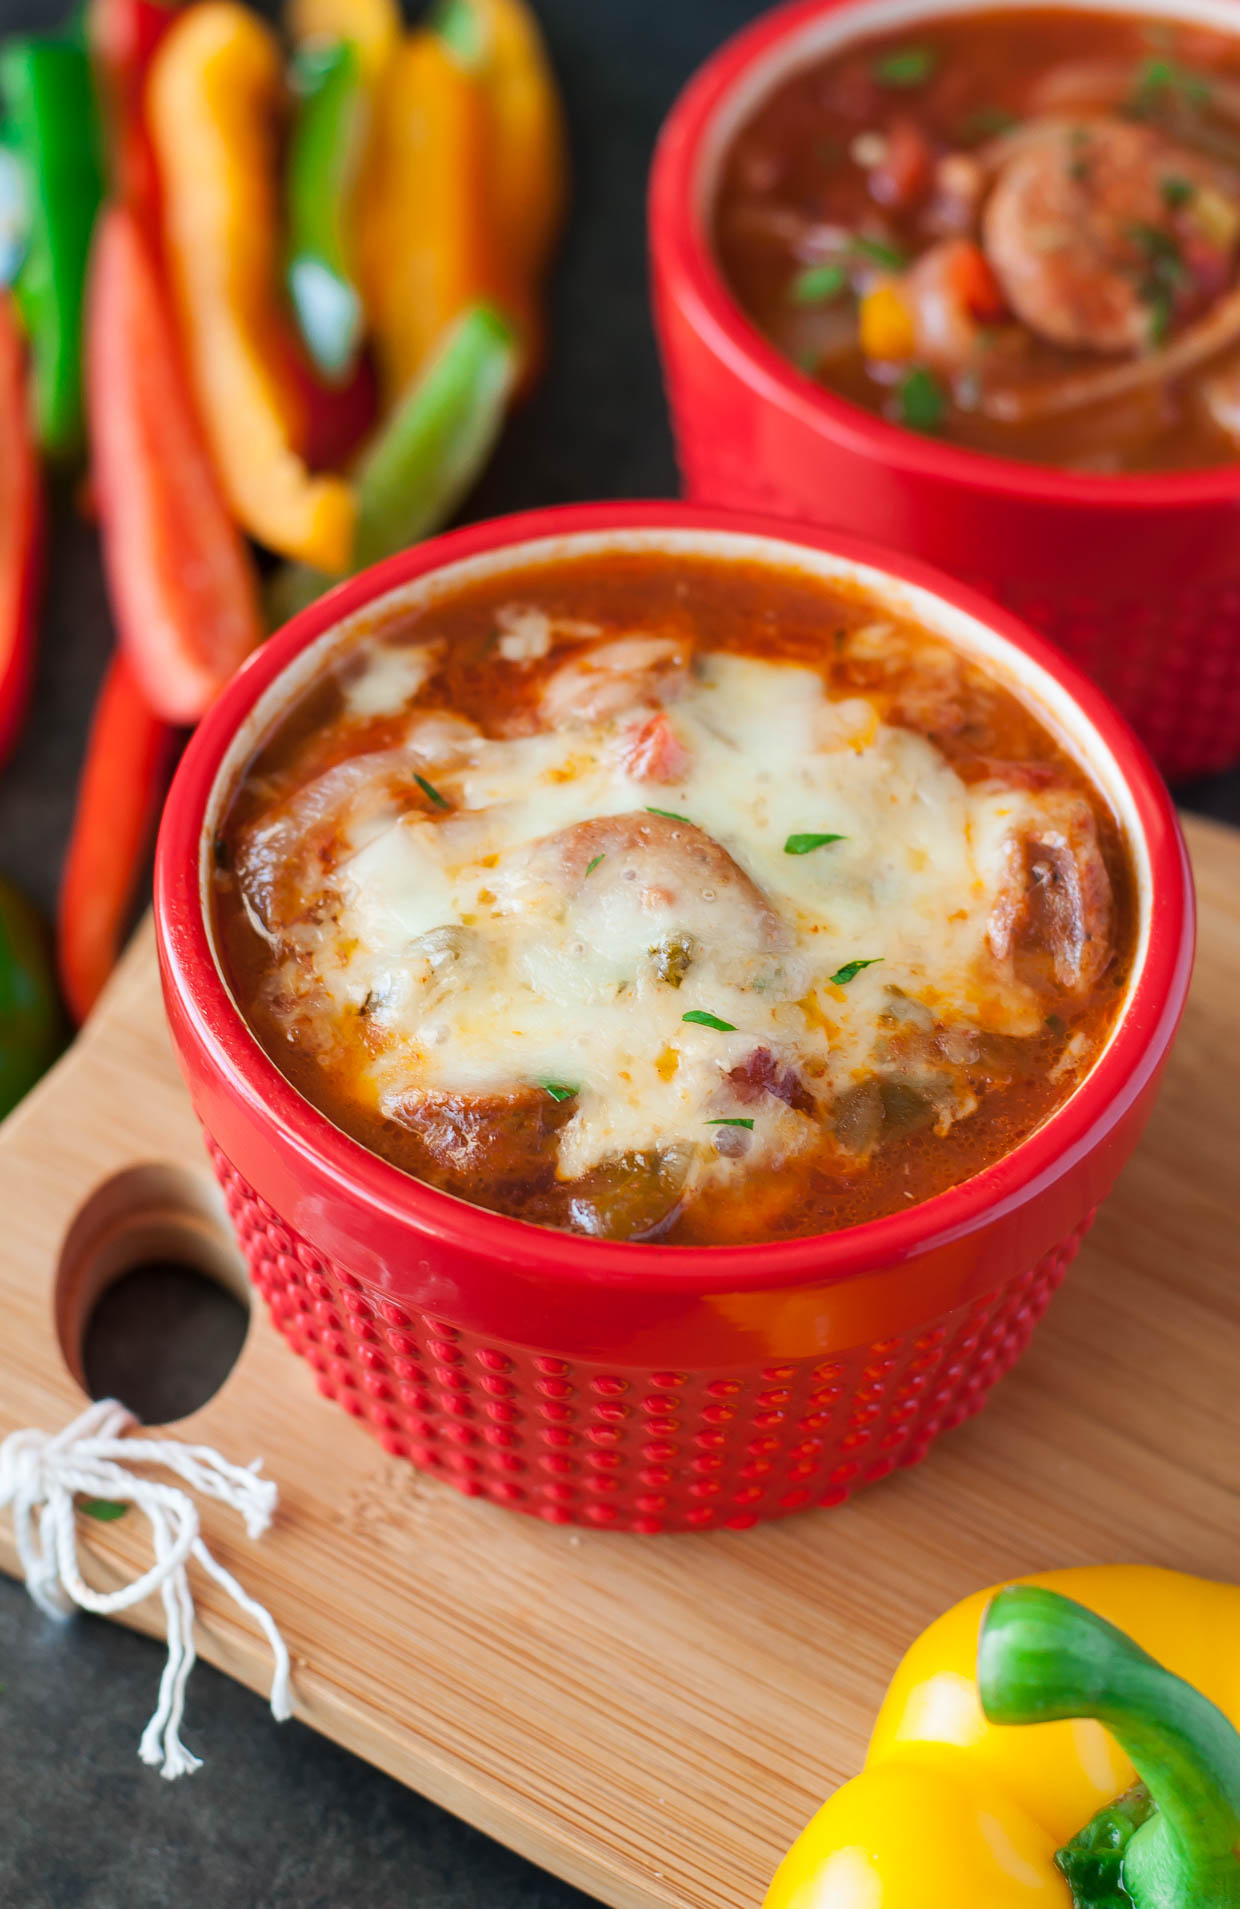 Sausage, Pepper, and Onion Soup :: Everything you love about the classic dish remixed into a positively DELICIOUS soup!